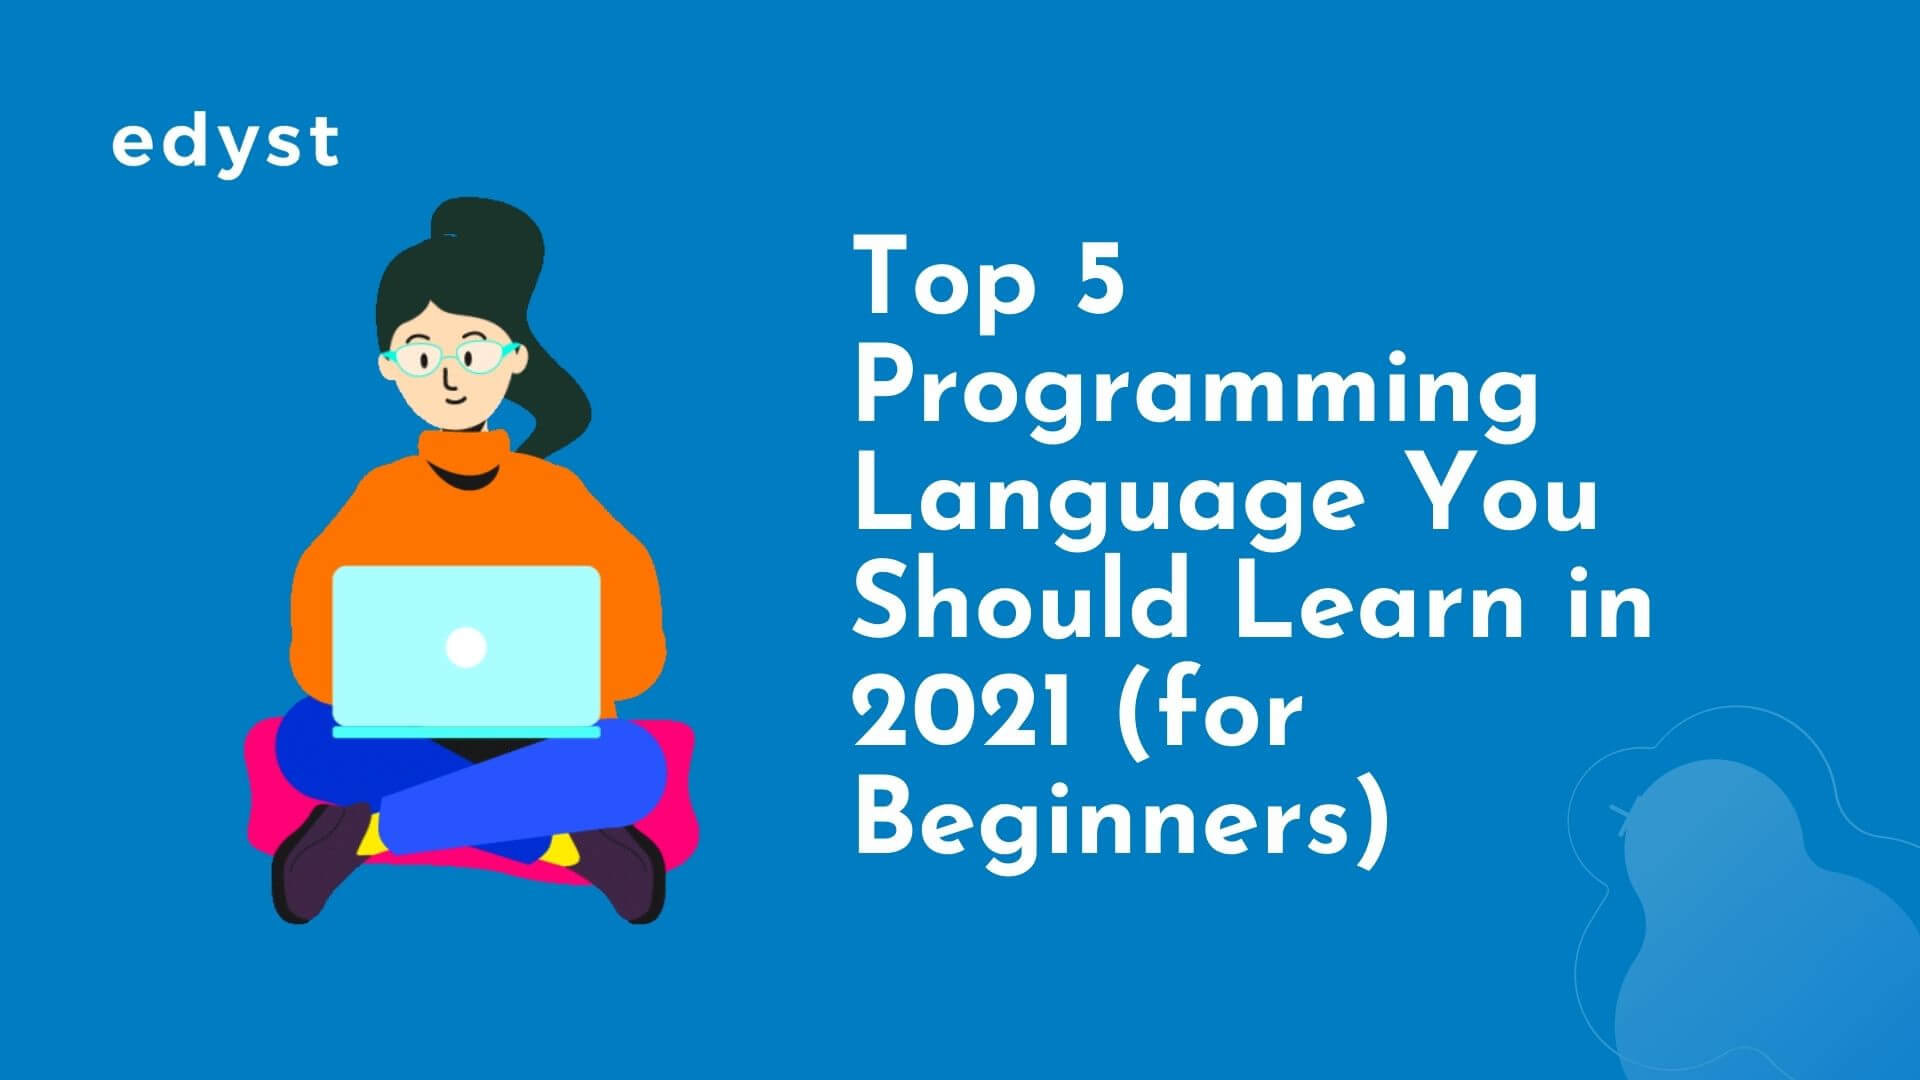 Top 5 Programming Language You Should Learn in 2021 (for Beginners)